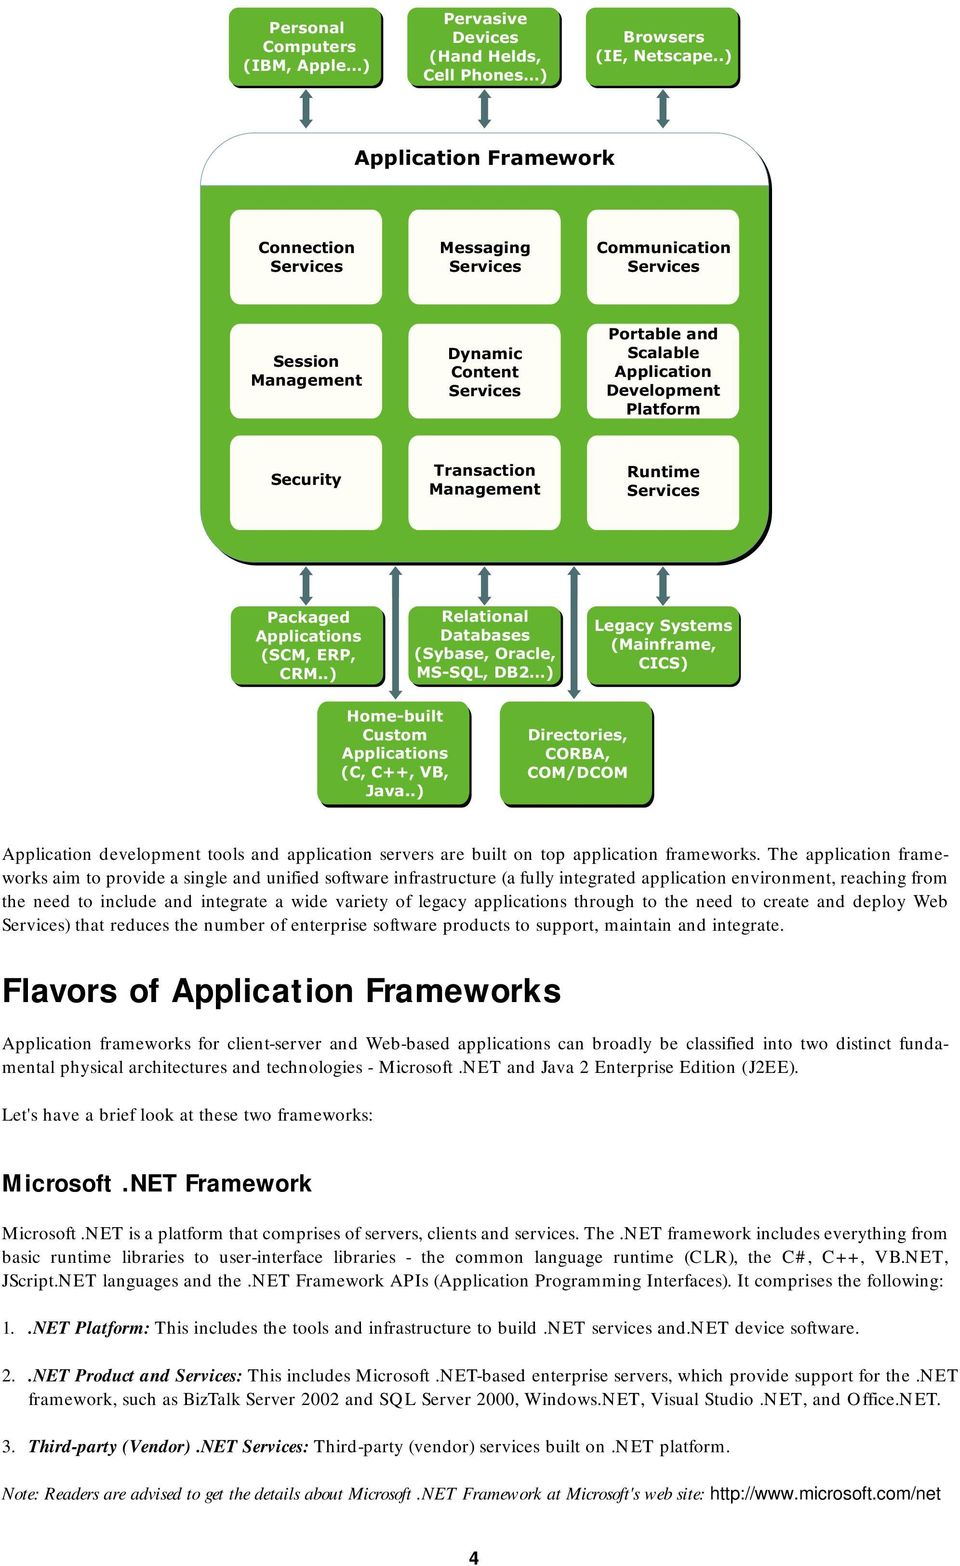 Web Services and Application Frameworks ( NET and J2EE) - PDF